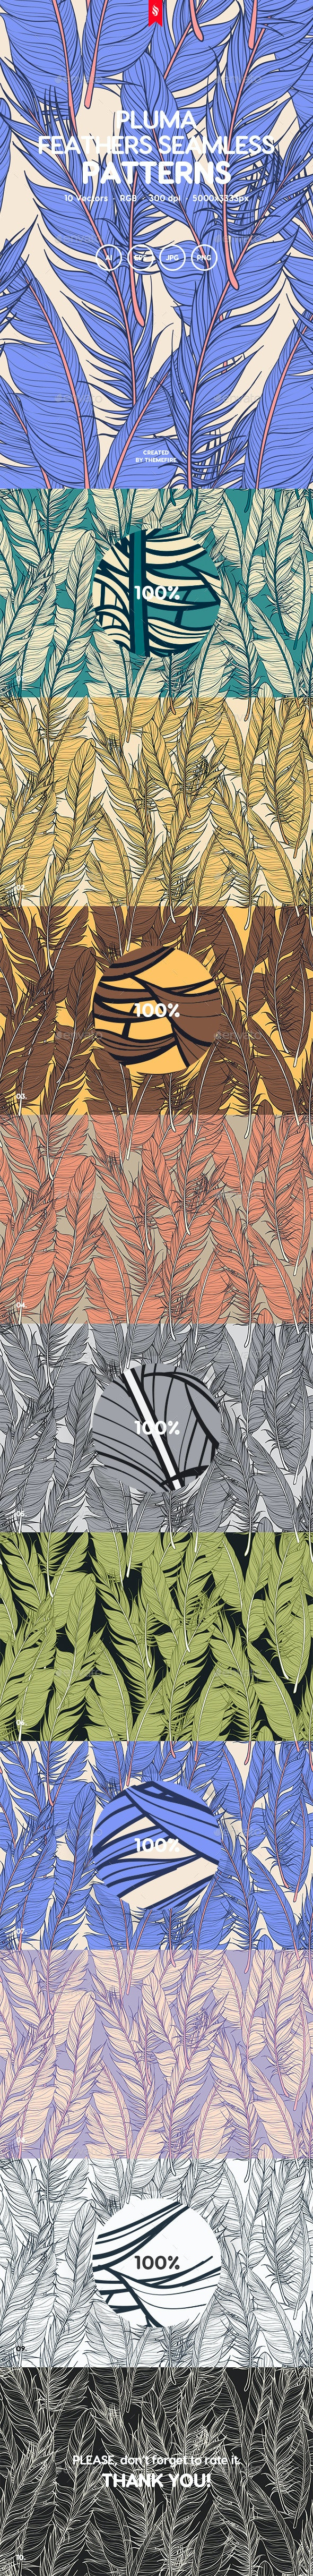 Pluma - Feathers Vector Seamless Patterns - Patterns Backgrounds